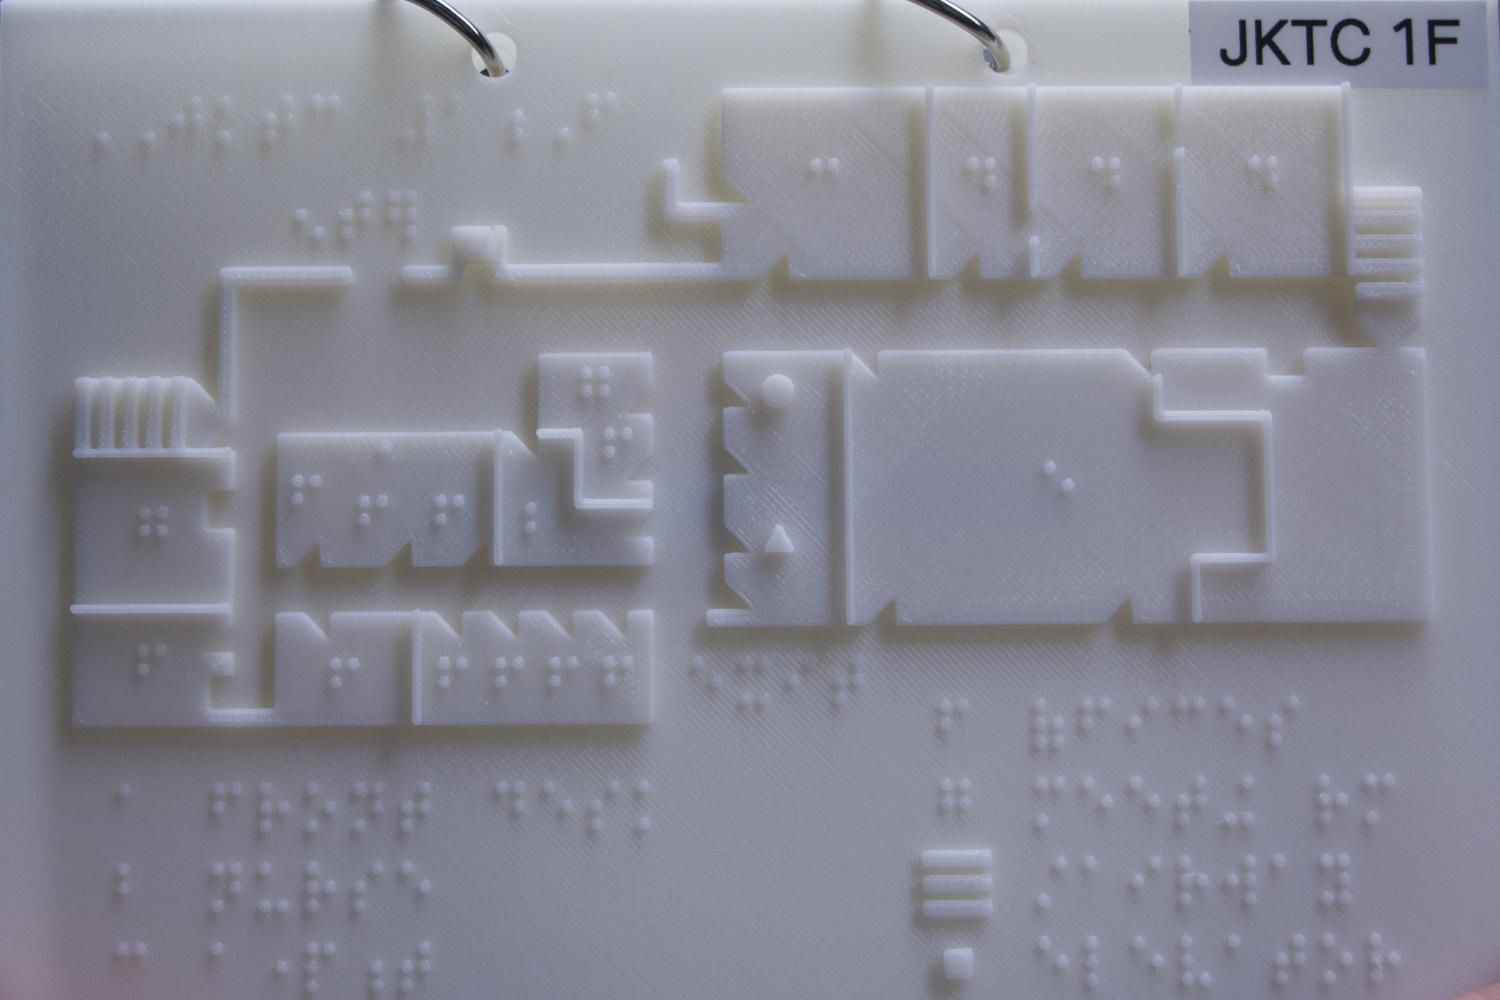 Braille Maps For Blind And Visually Impaired Created With